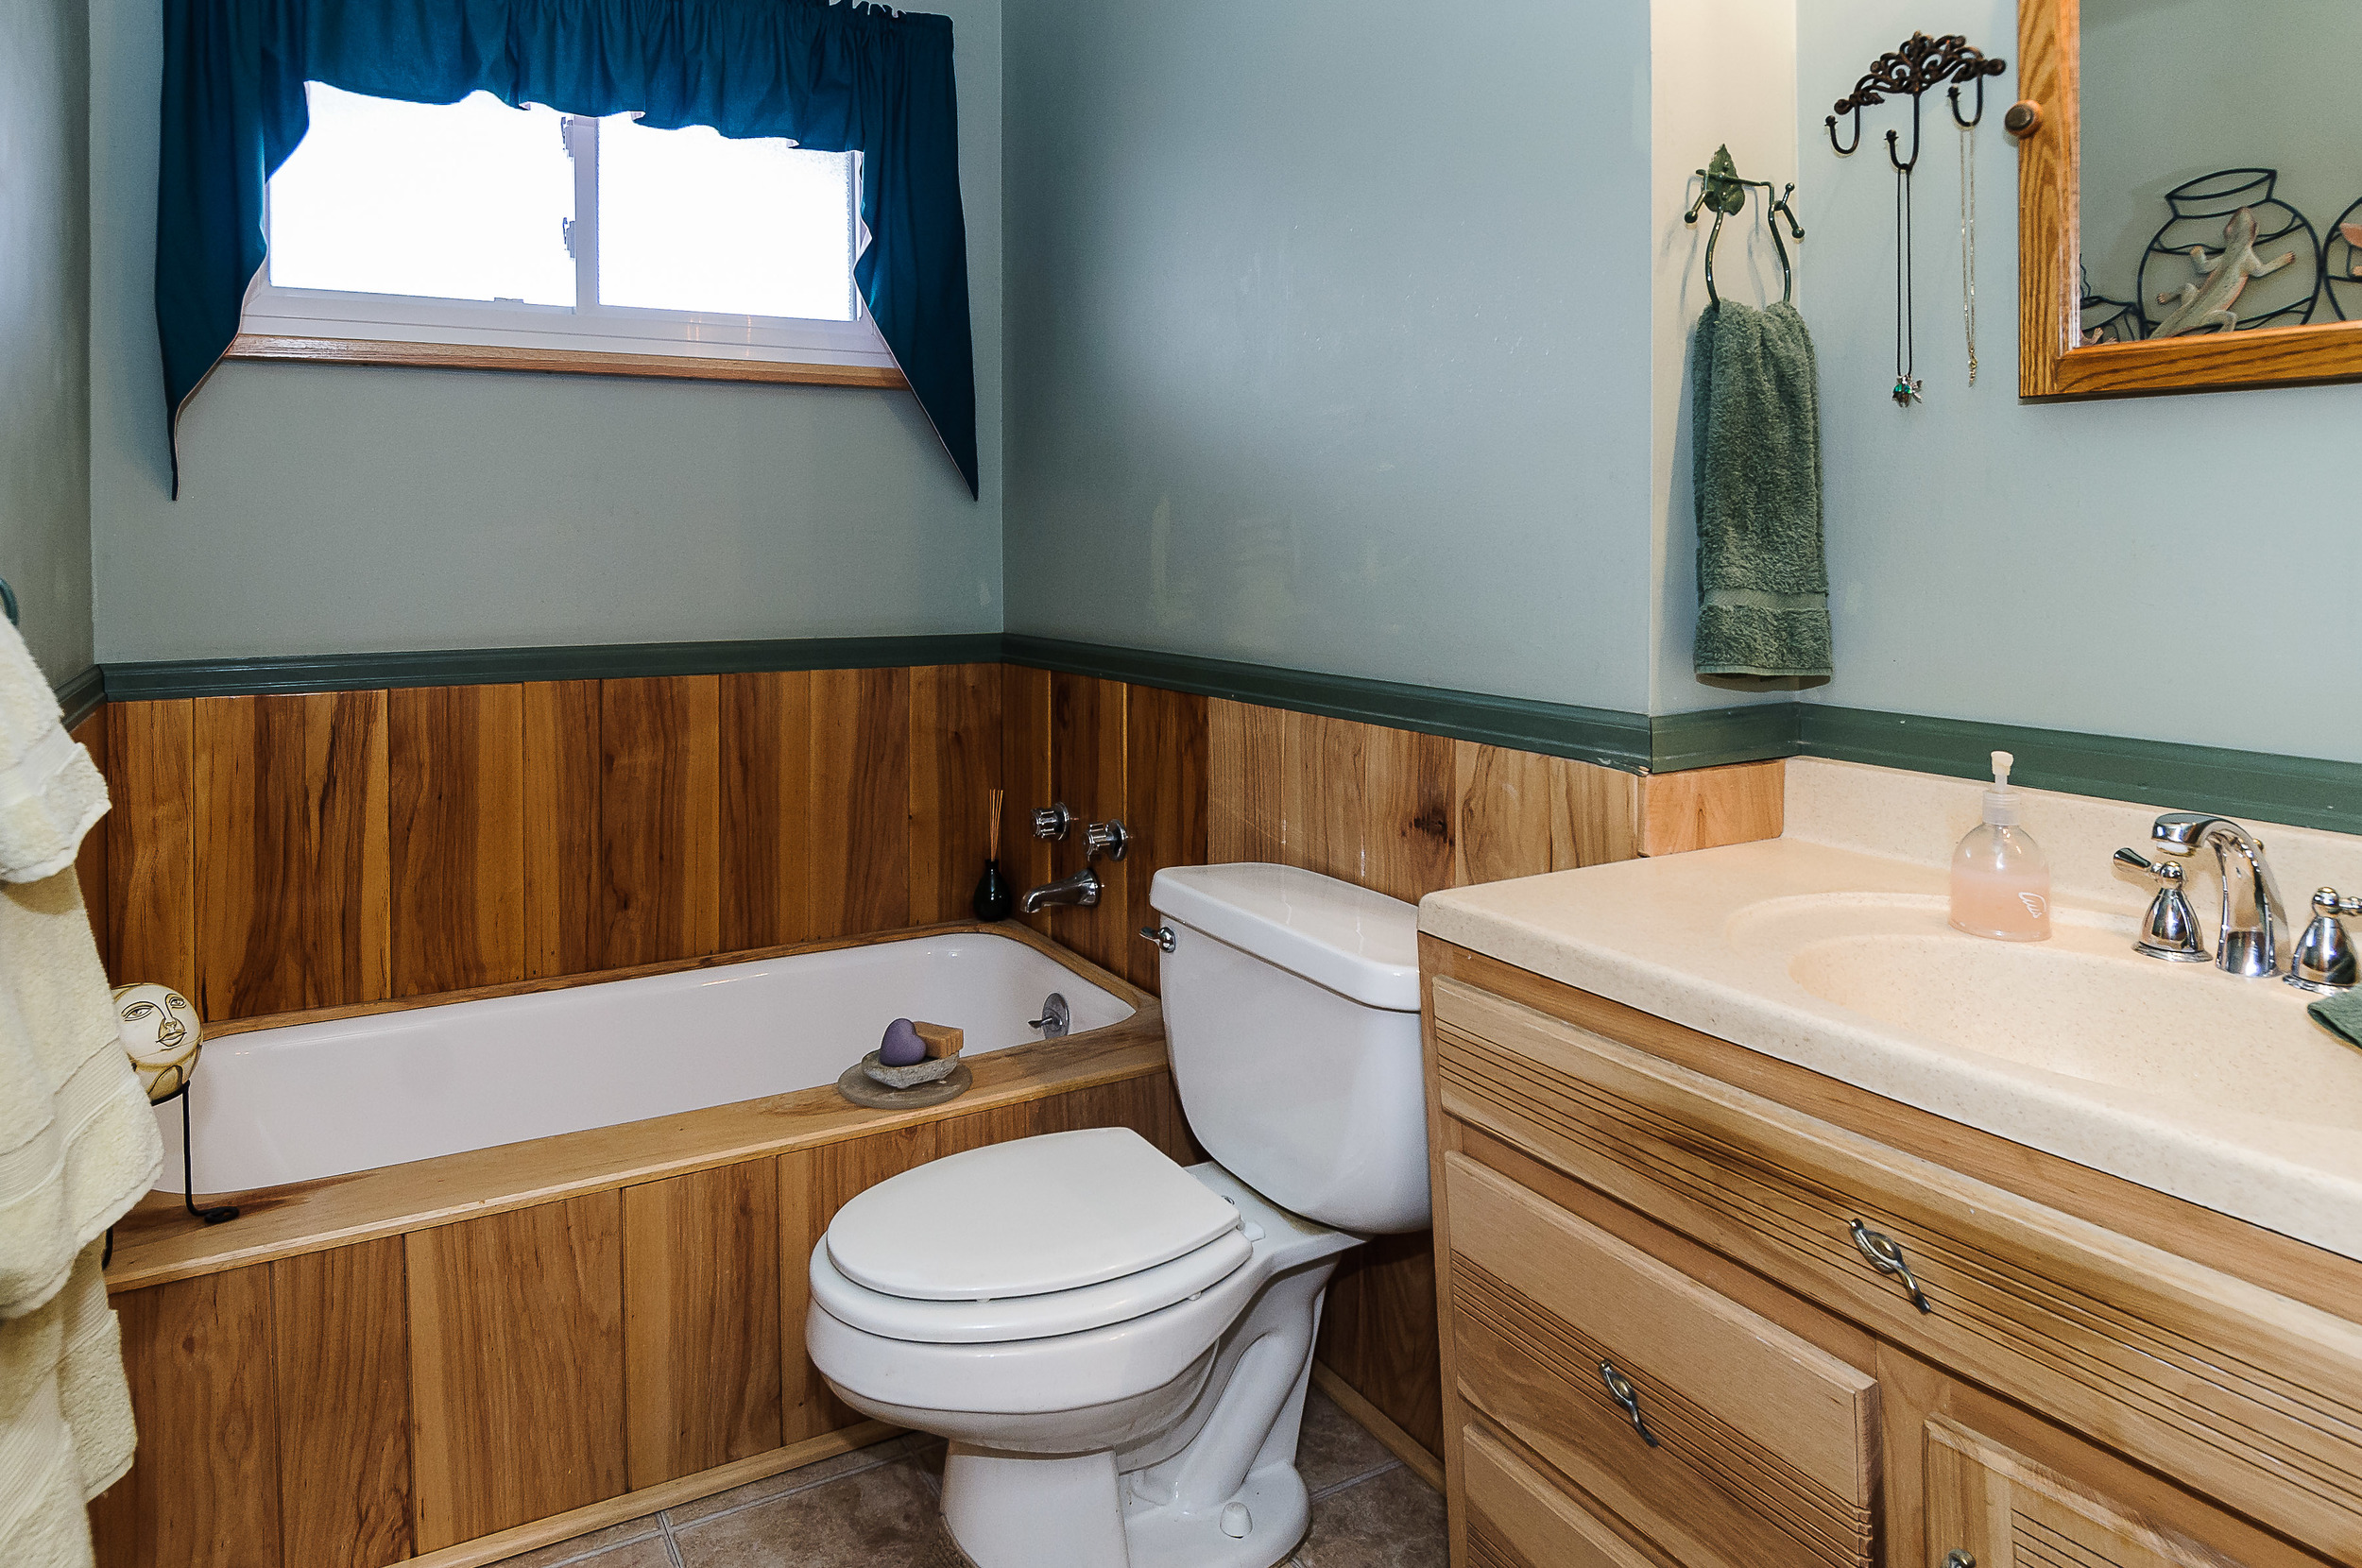 364 Xanadu St Aurora CO 80012-print-019-11-Main Bathroom-3600x2391-300dpi.jpg